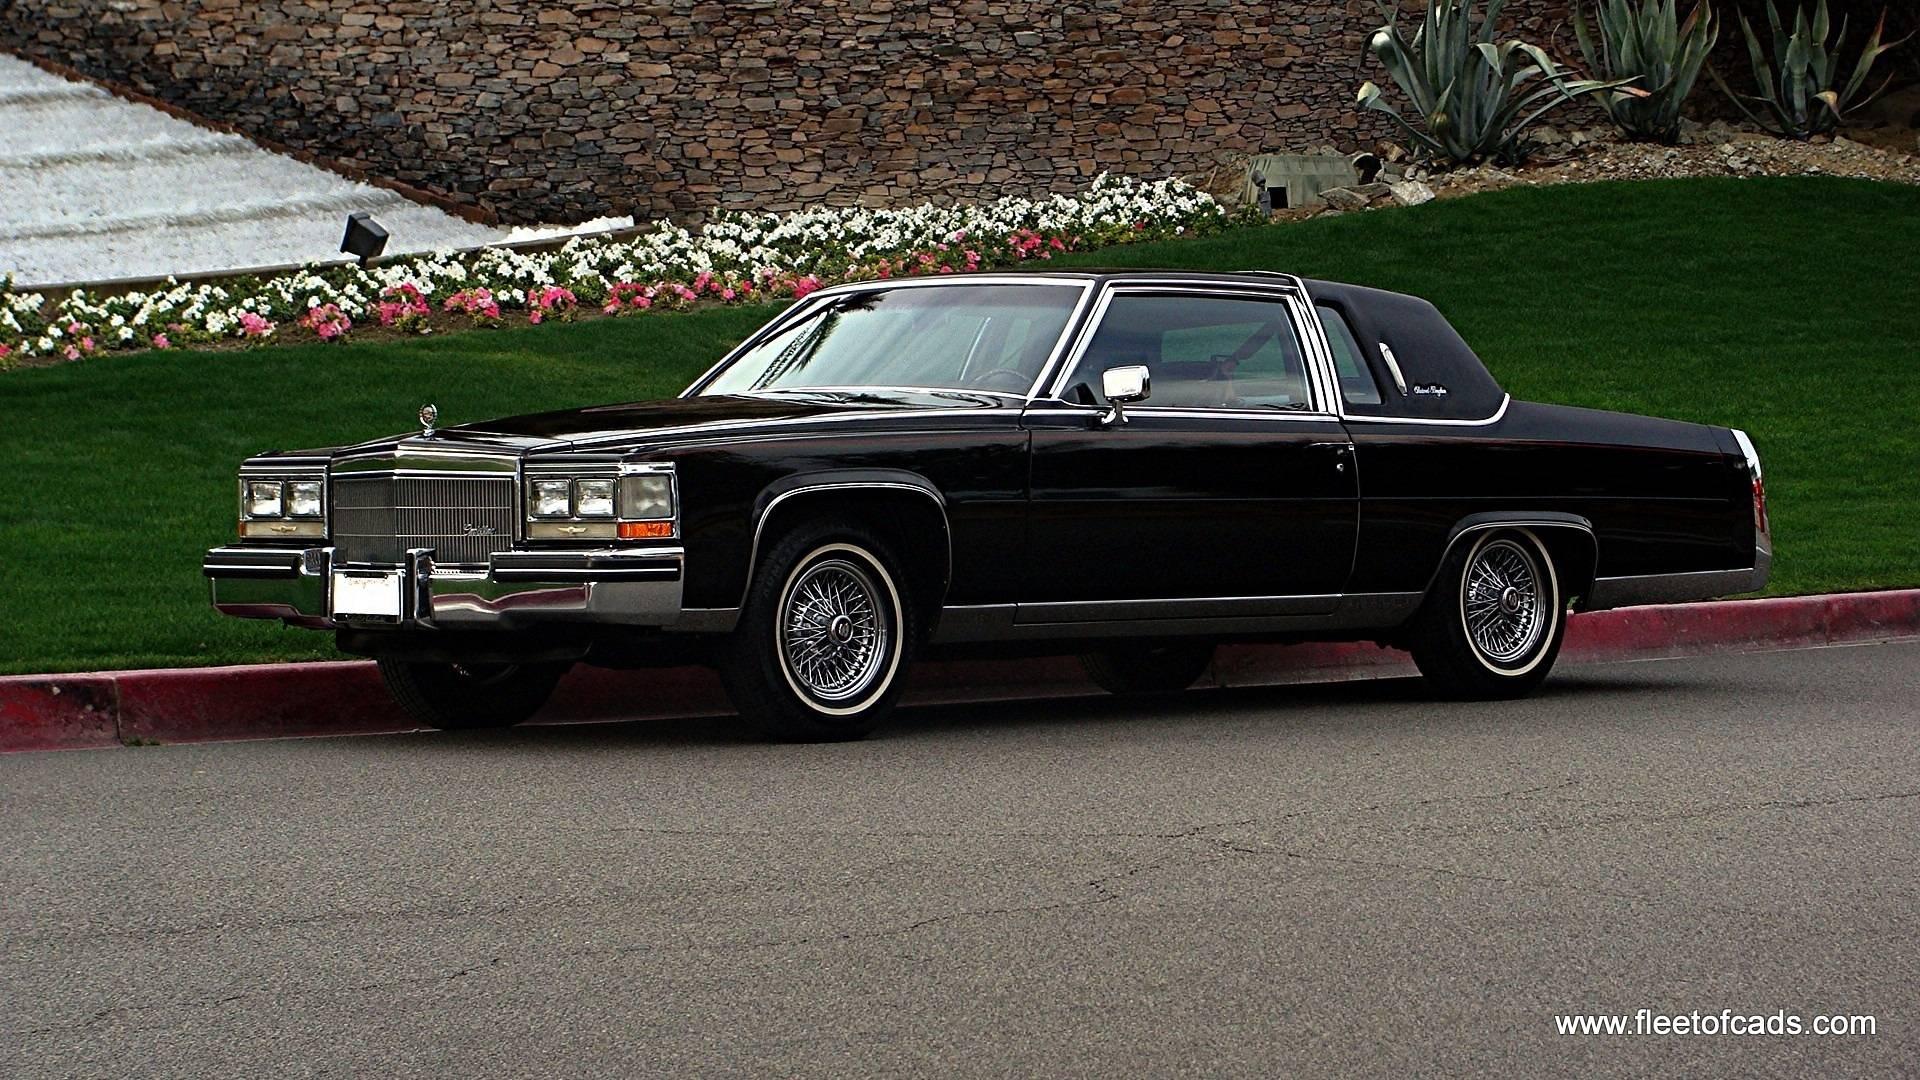 RK_2586] 93 Cadillac Fleetwood Brougham Wiring Diagram Download DiagramHicag Umng Mohammedshrine Librar Wiring 101